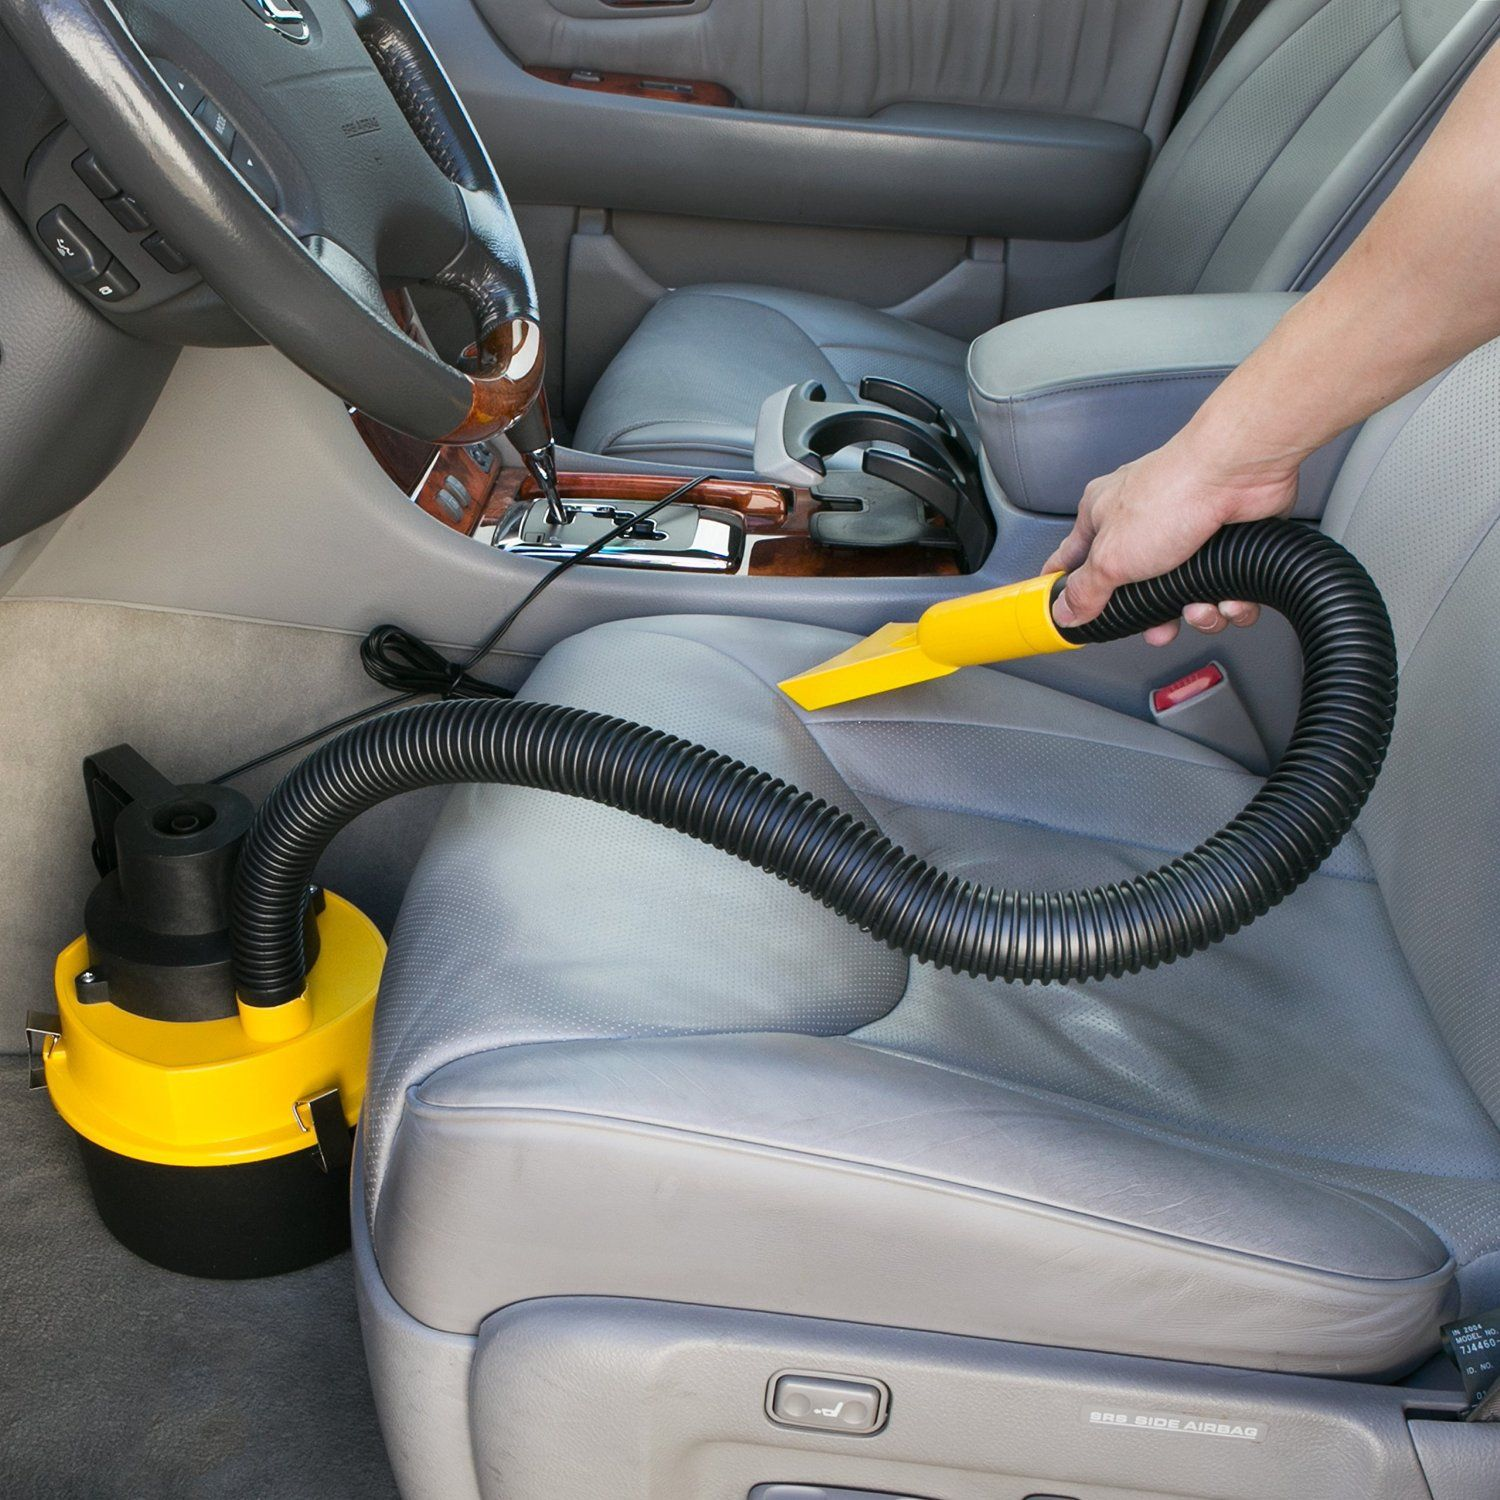 Wagan 750 Wet And Dry Ultra Vac With Air Inflator Reviews Car Vacuum Vacuum Cleaner Car Vacuum Cleaner